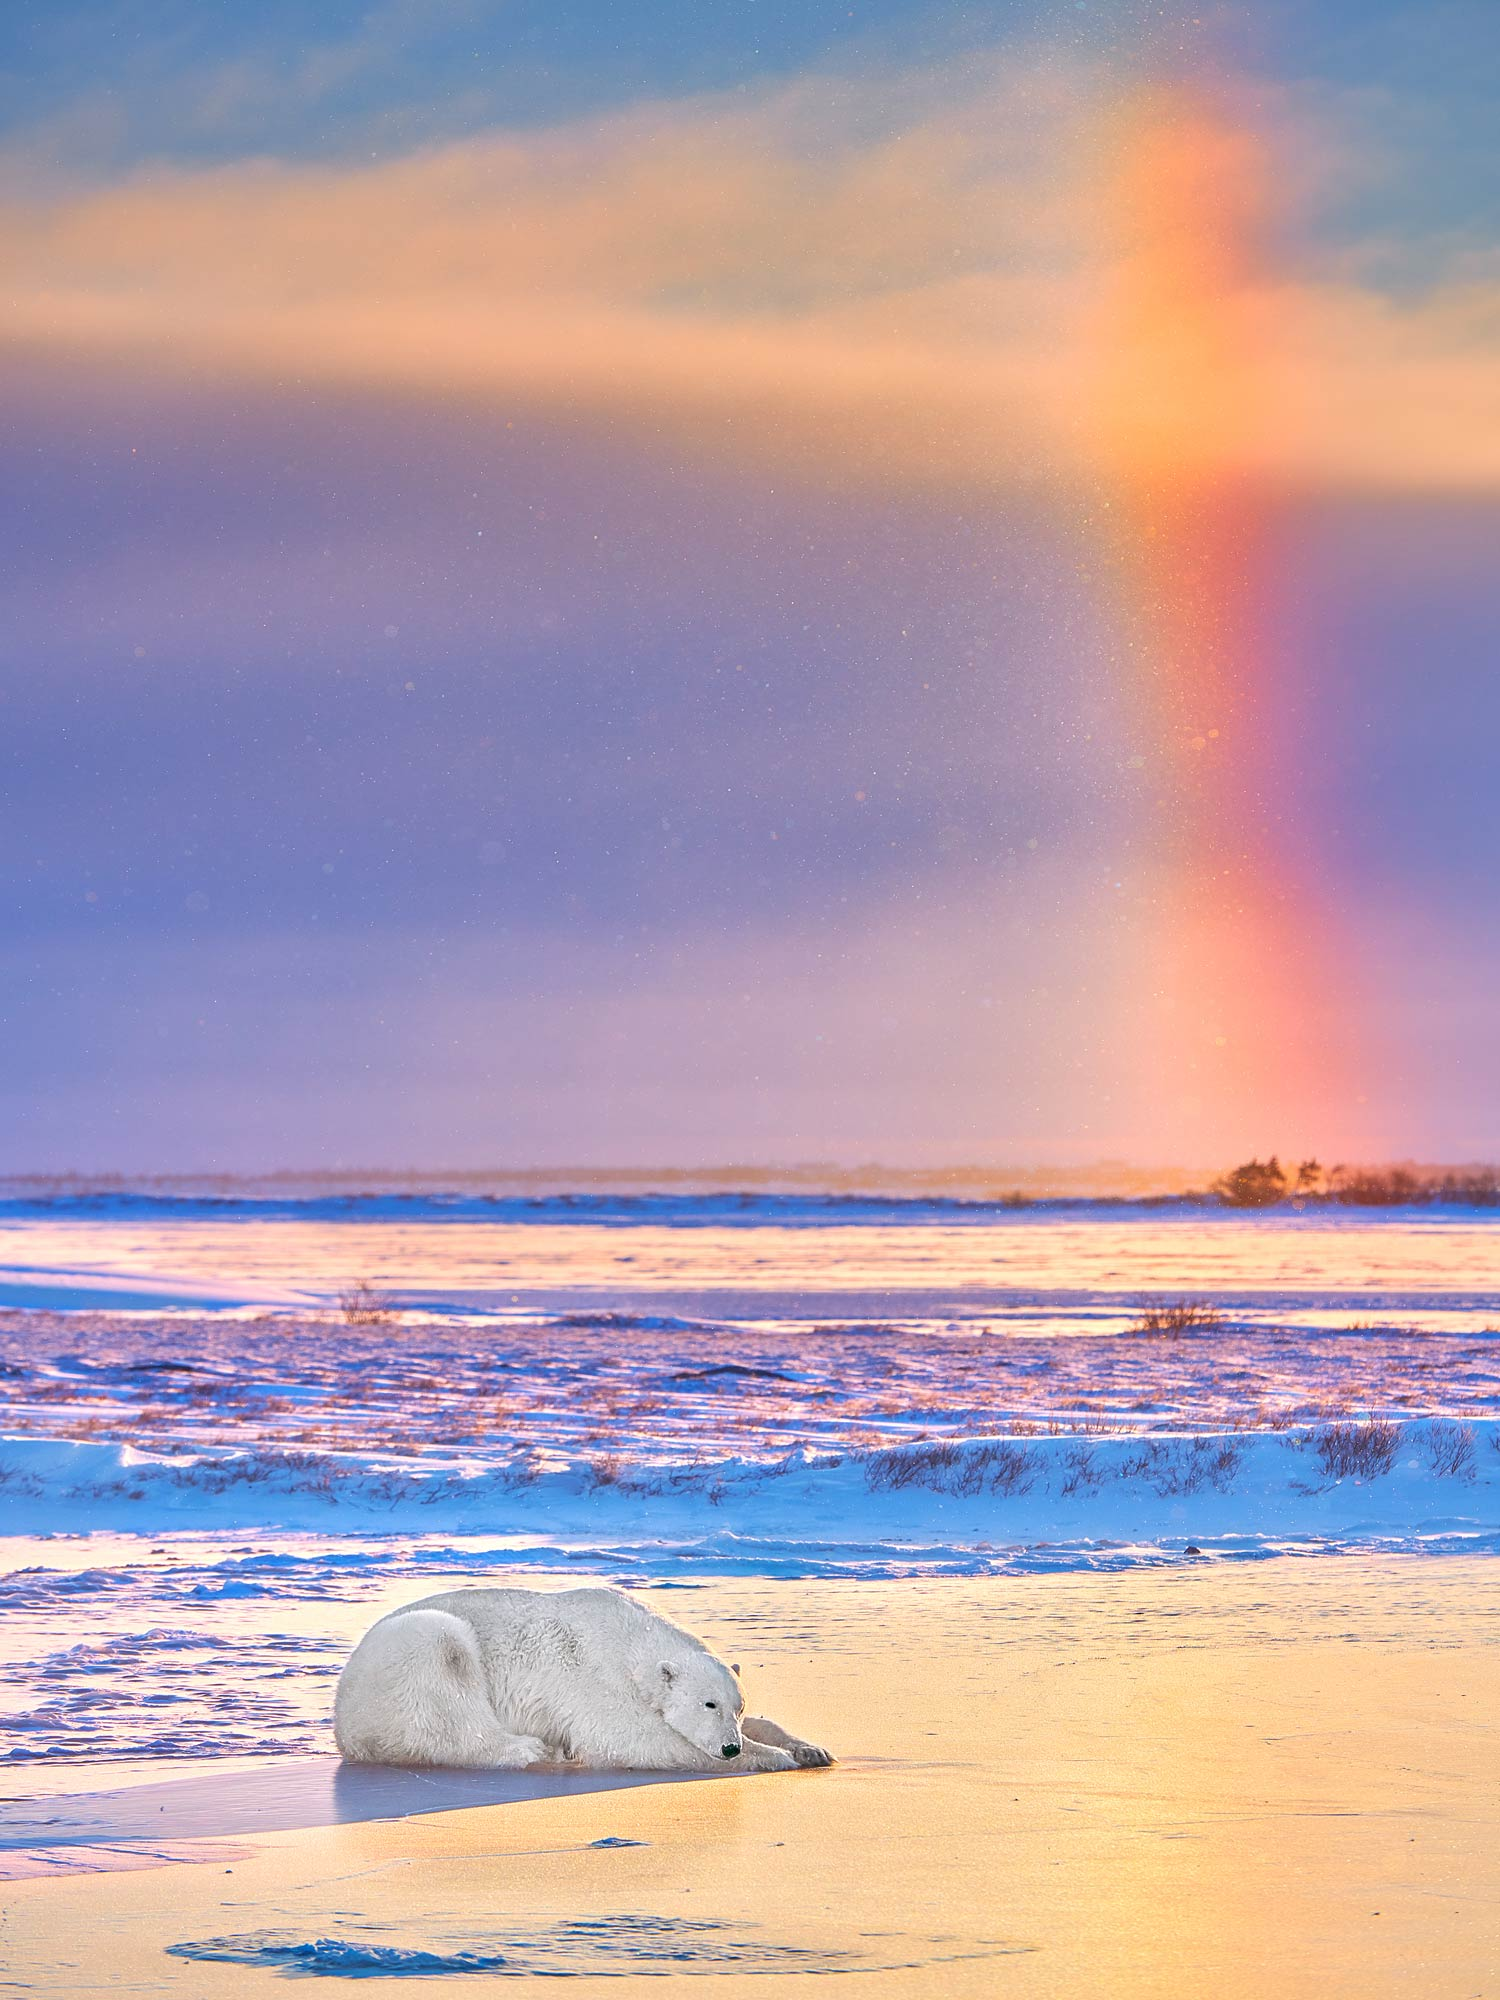 A polar bear laying in front of a rainbow